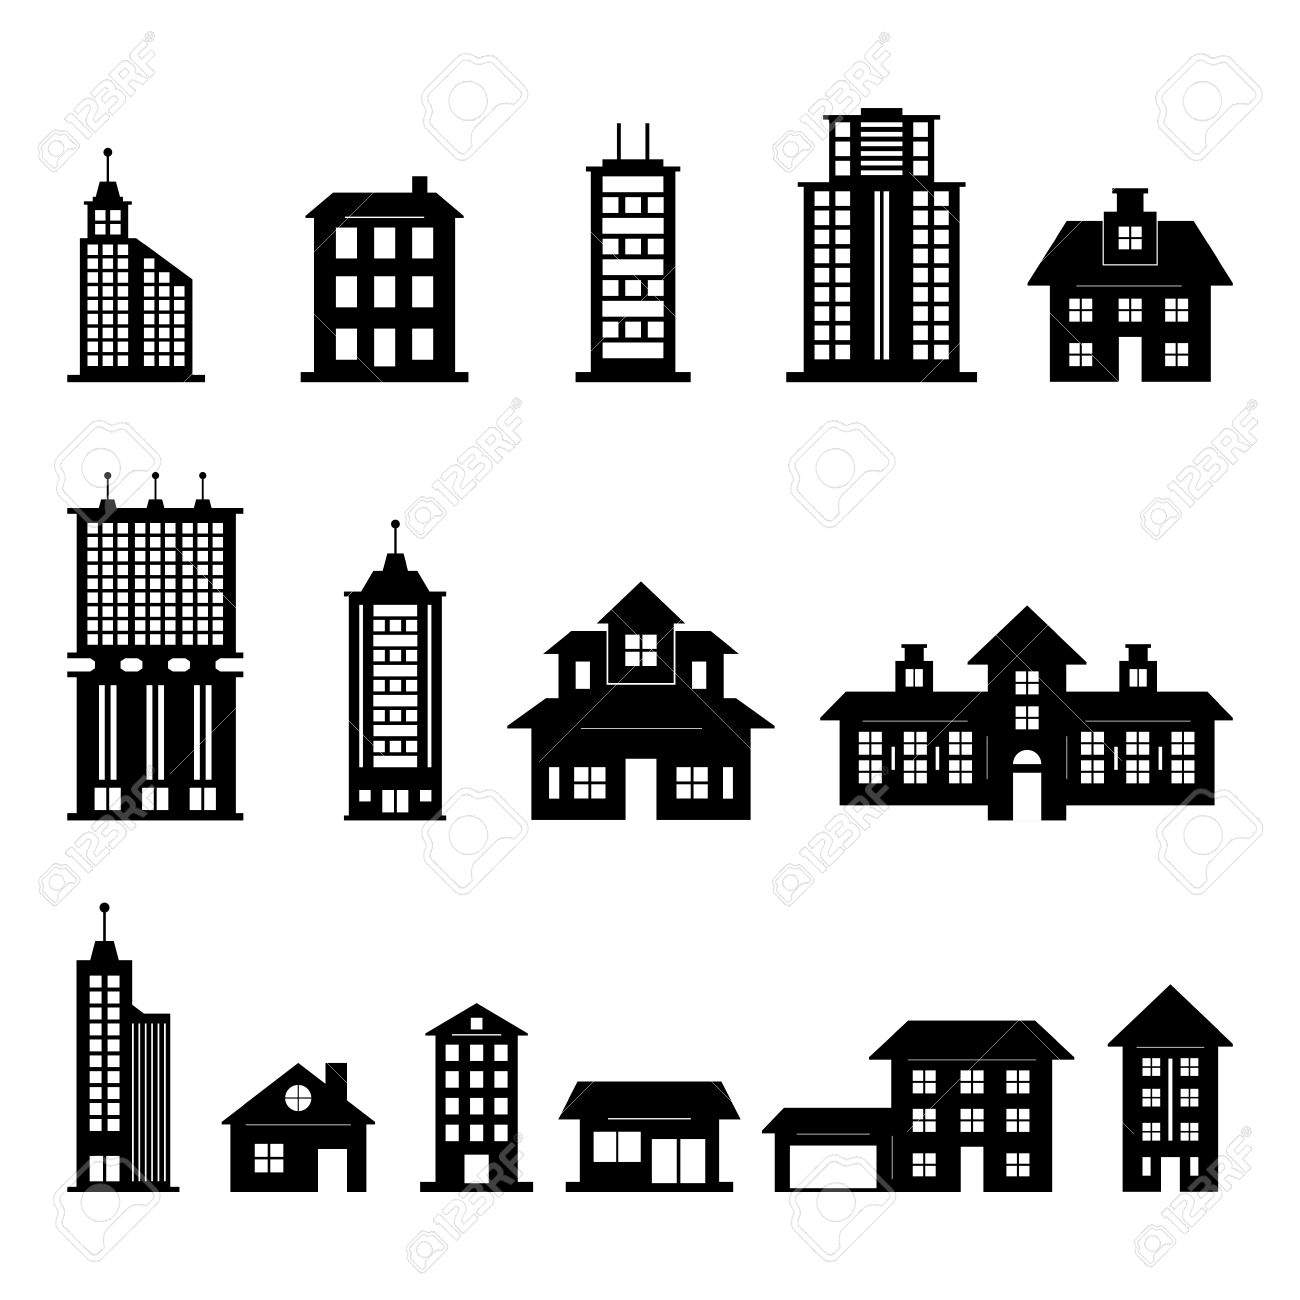 Building Vector Royalty Free Cliparts, Vectors, And Stock.